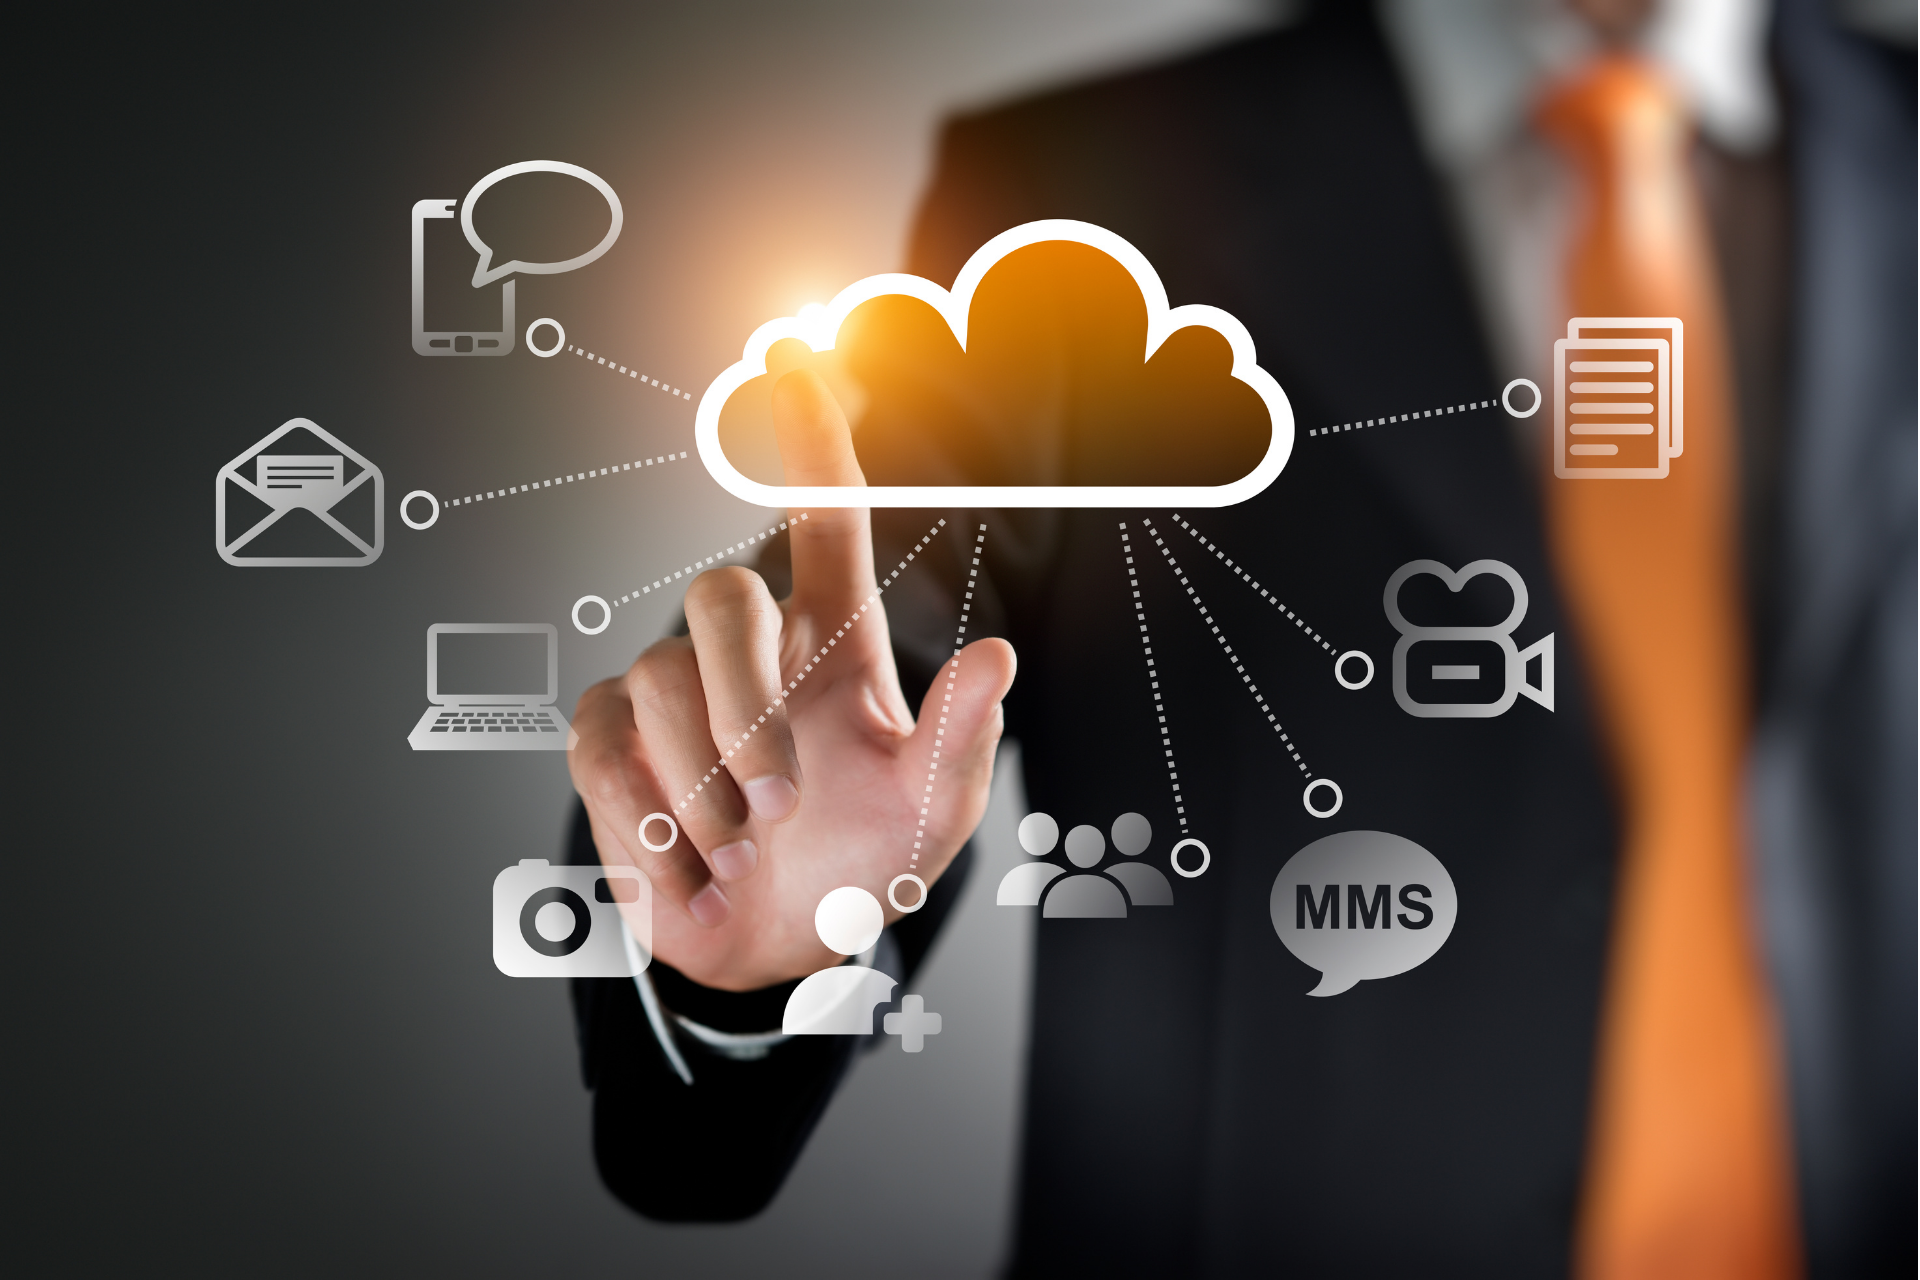 image of components of cloud computing on a clear screen